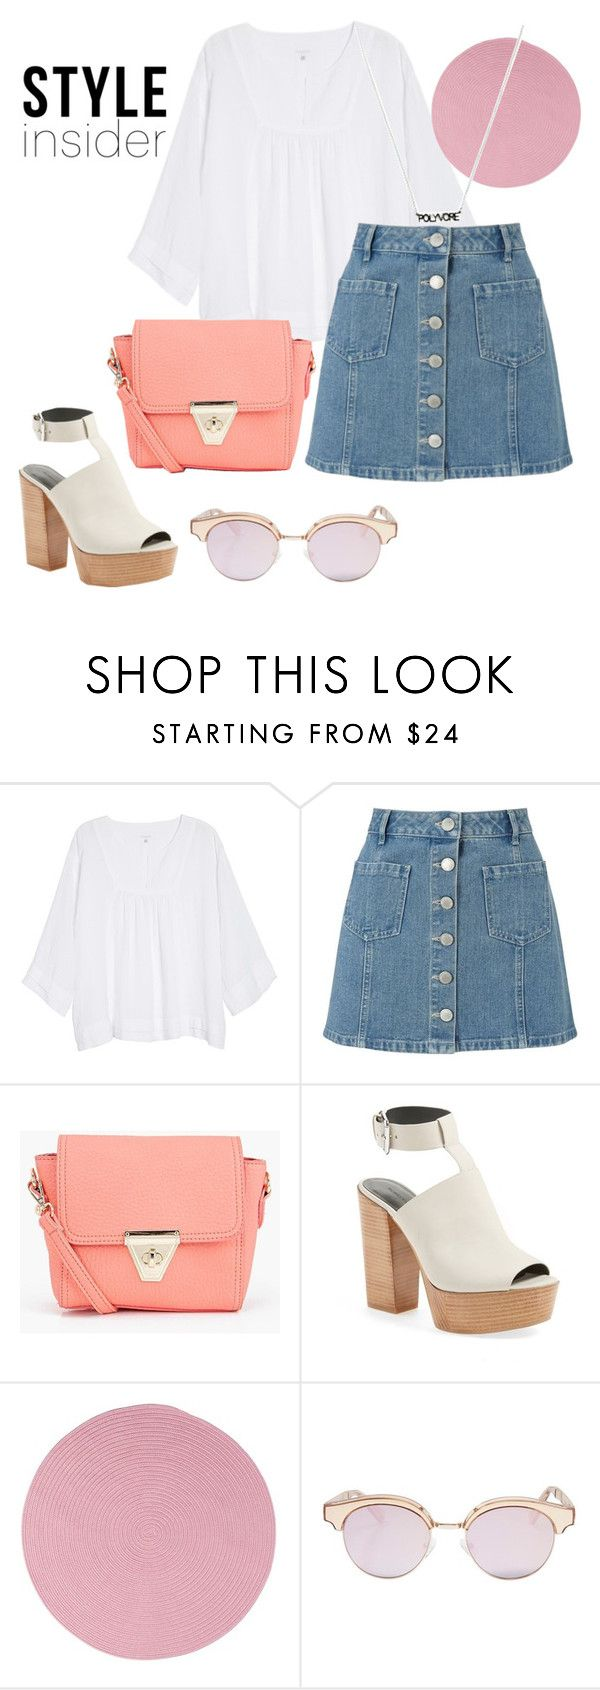 """contest ✨"" by guccidelevingne ❤ liked on Polyvore featuring Eskandar, Miss Selfridge, Boohoo, Rebecca Minkoff, Colonial Mills and Le Specs"